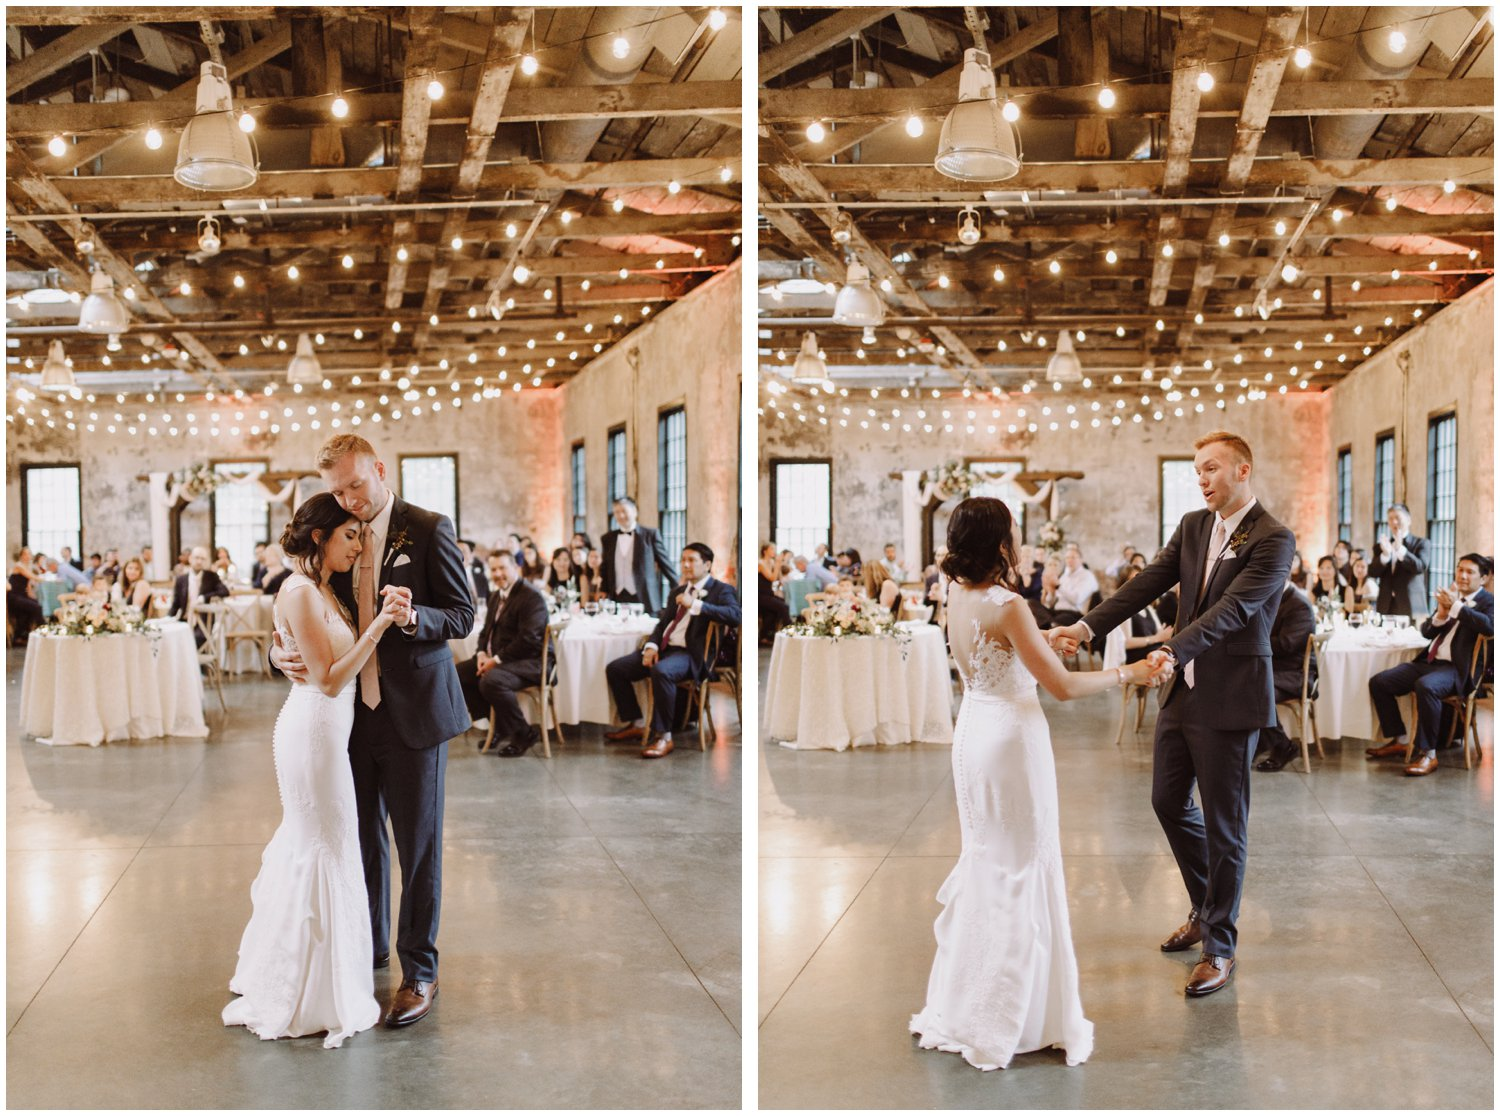 Baltimore wedding photographer | Mt Washington Mill Dye House wedding reception | bride and groom first dance | Baltimore Maryland wedding